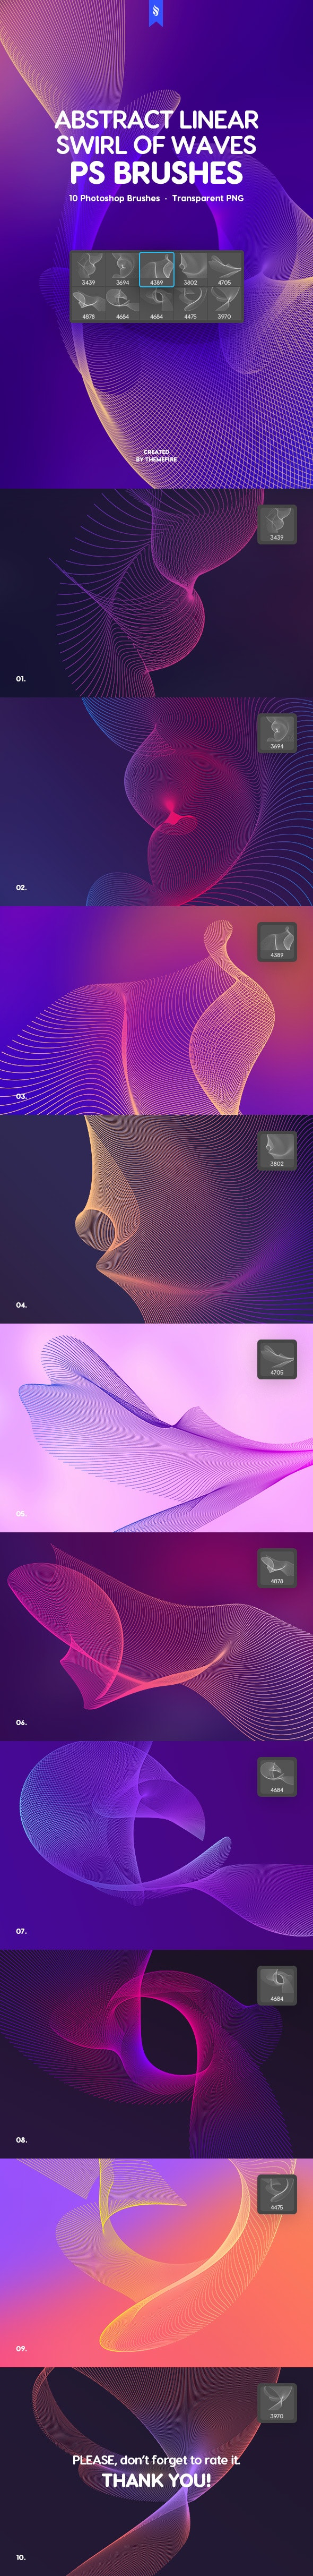 Linear Swirl of Waves Photoshop Brushes - Abstract Brushes